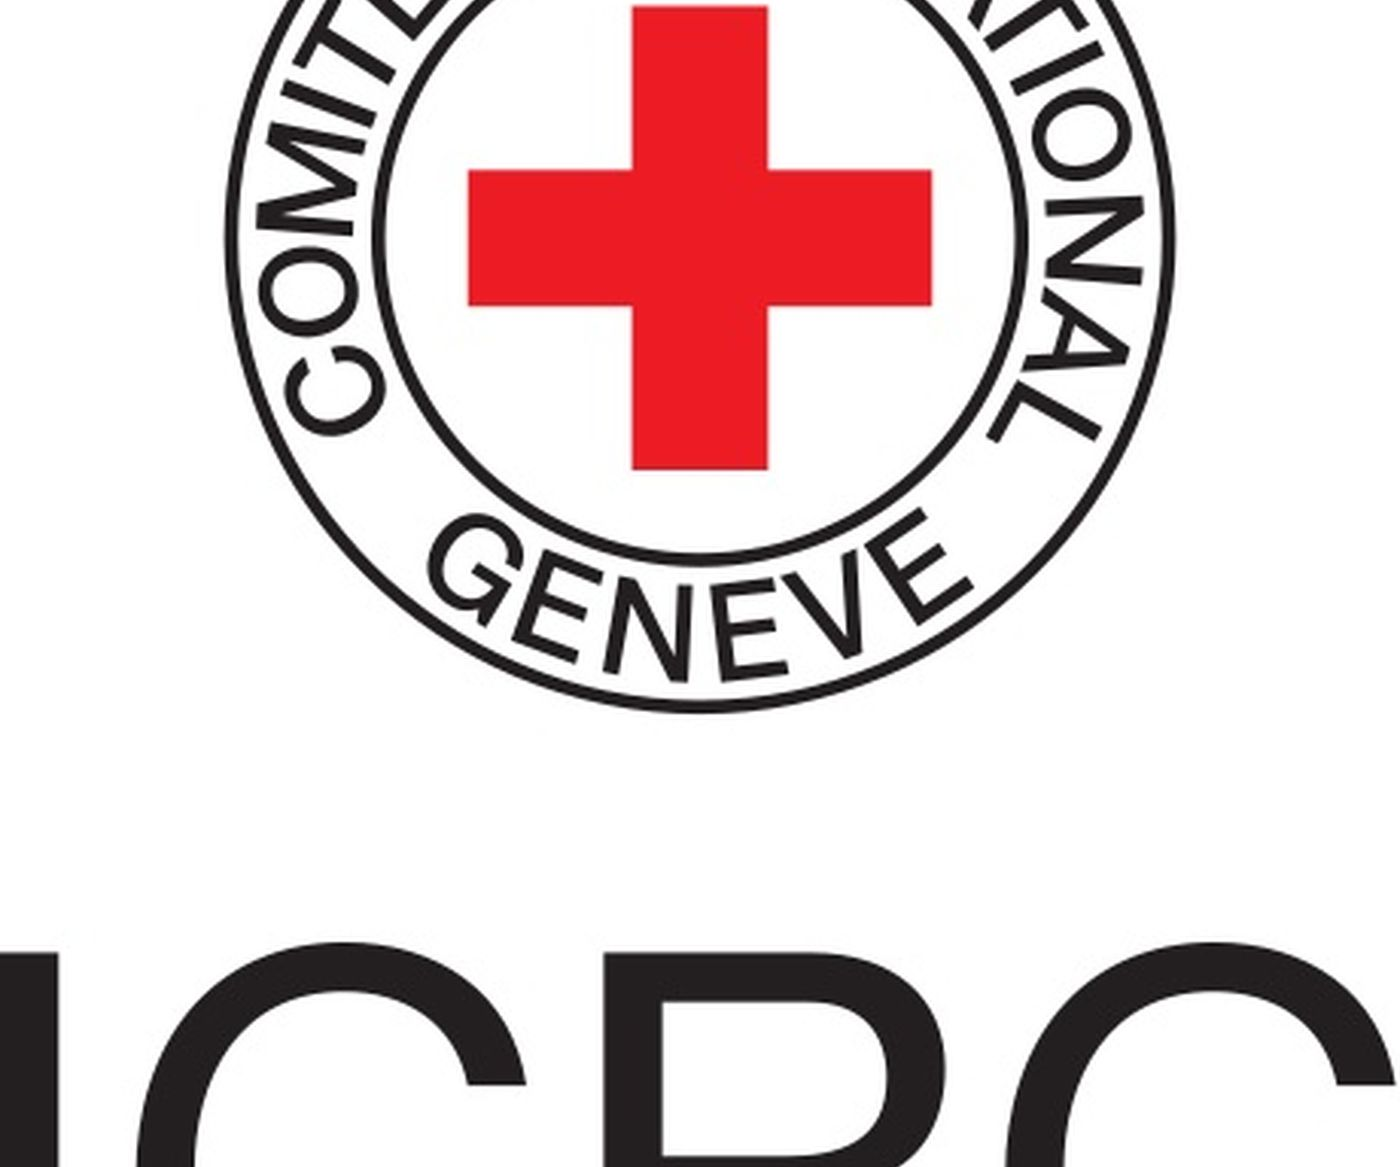 Emblem Of The  Icrc